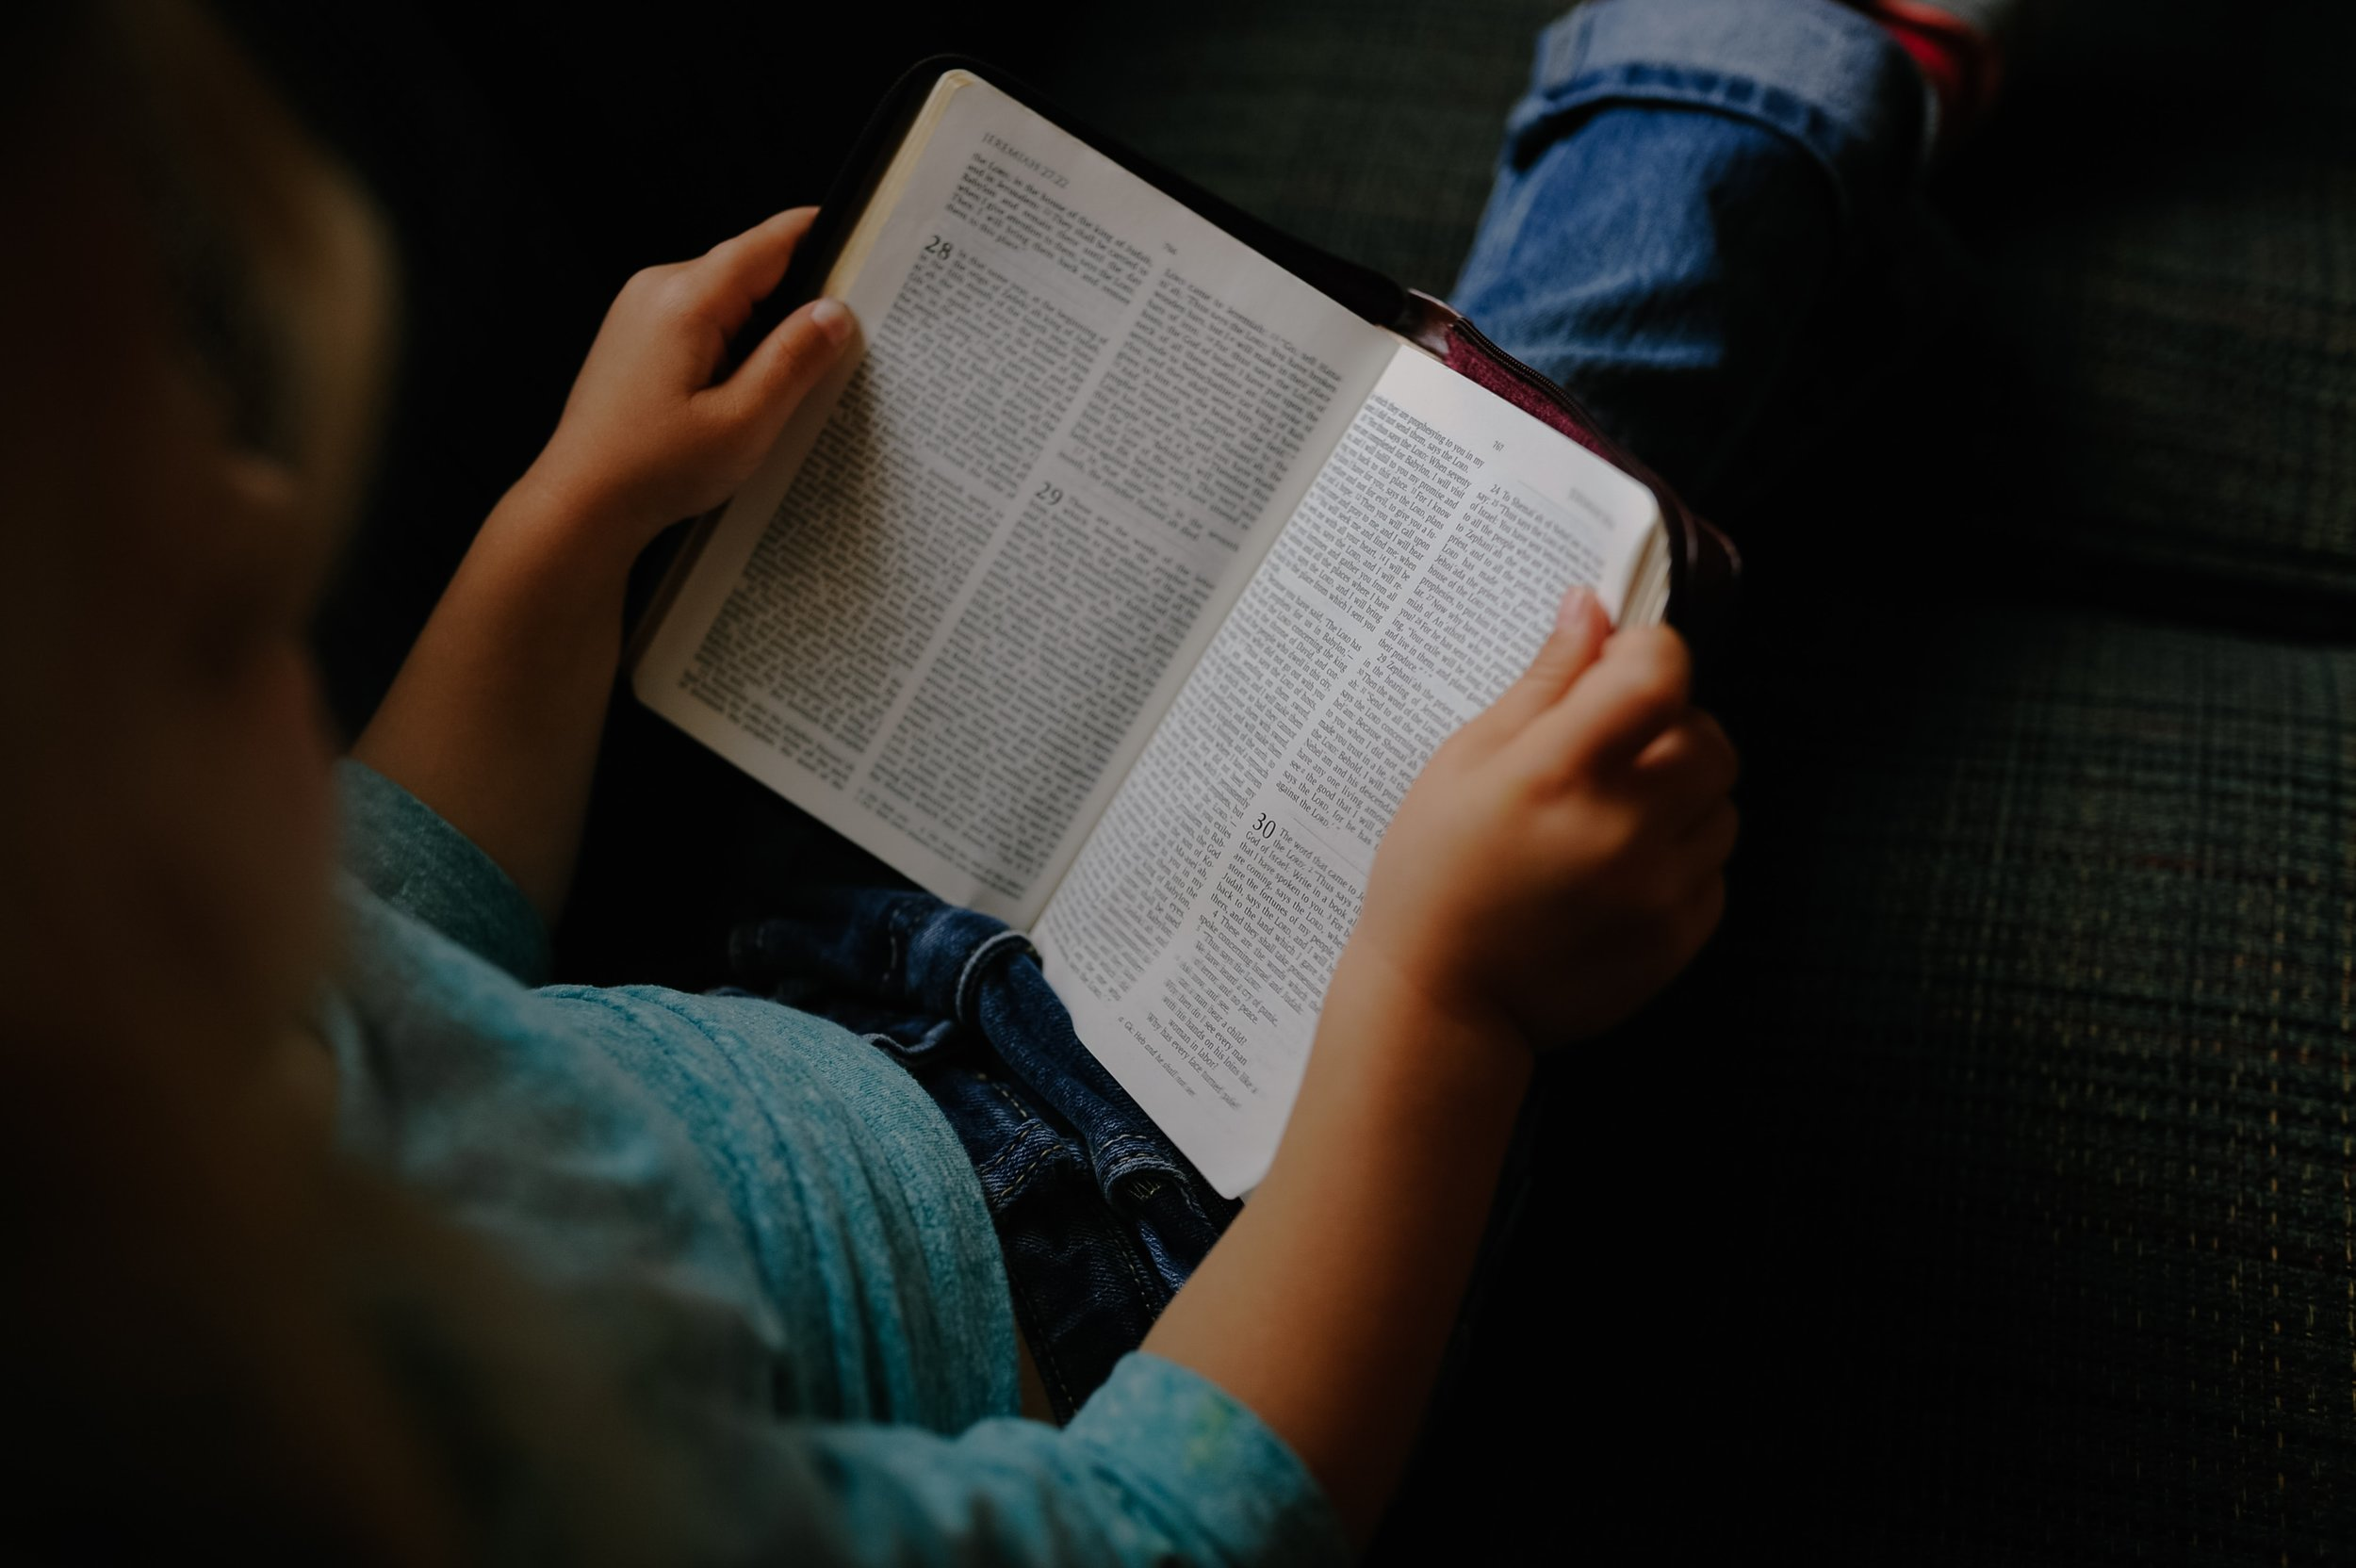 Don't forget! - Bible Study Classes resume Sept 8 at 9 a.m.Kemper's Revolution ClassPeter and Ryan's Youth ClassFrank's Foundation Classall at 9 a.m.